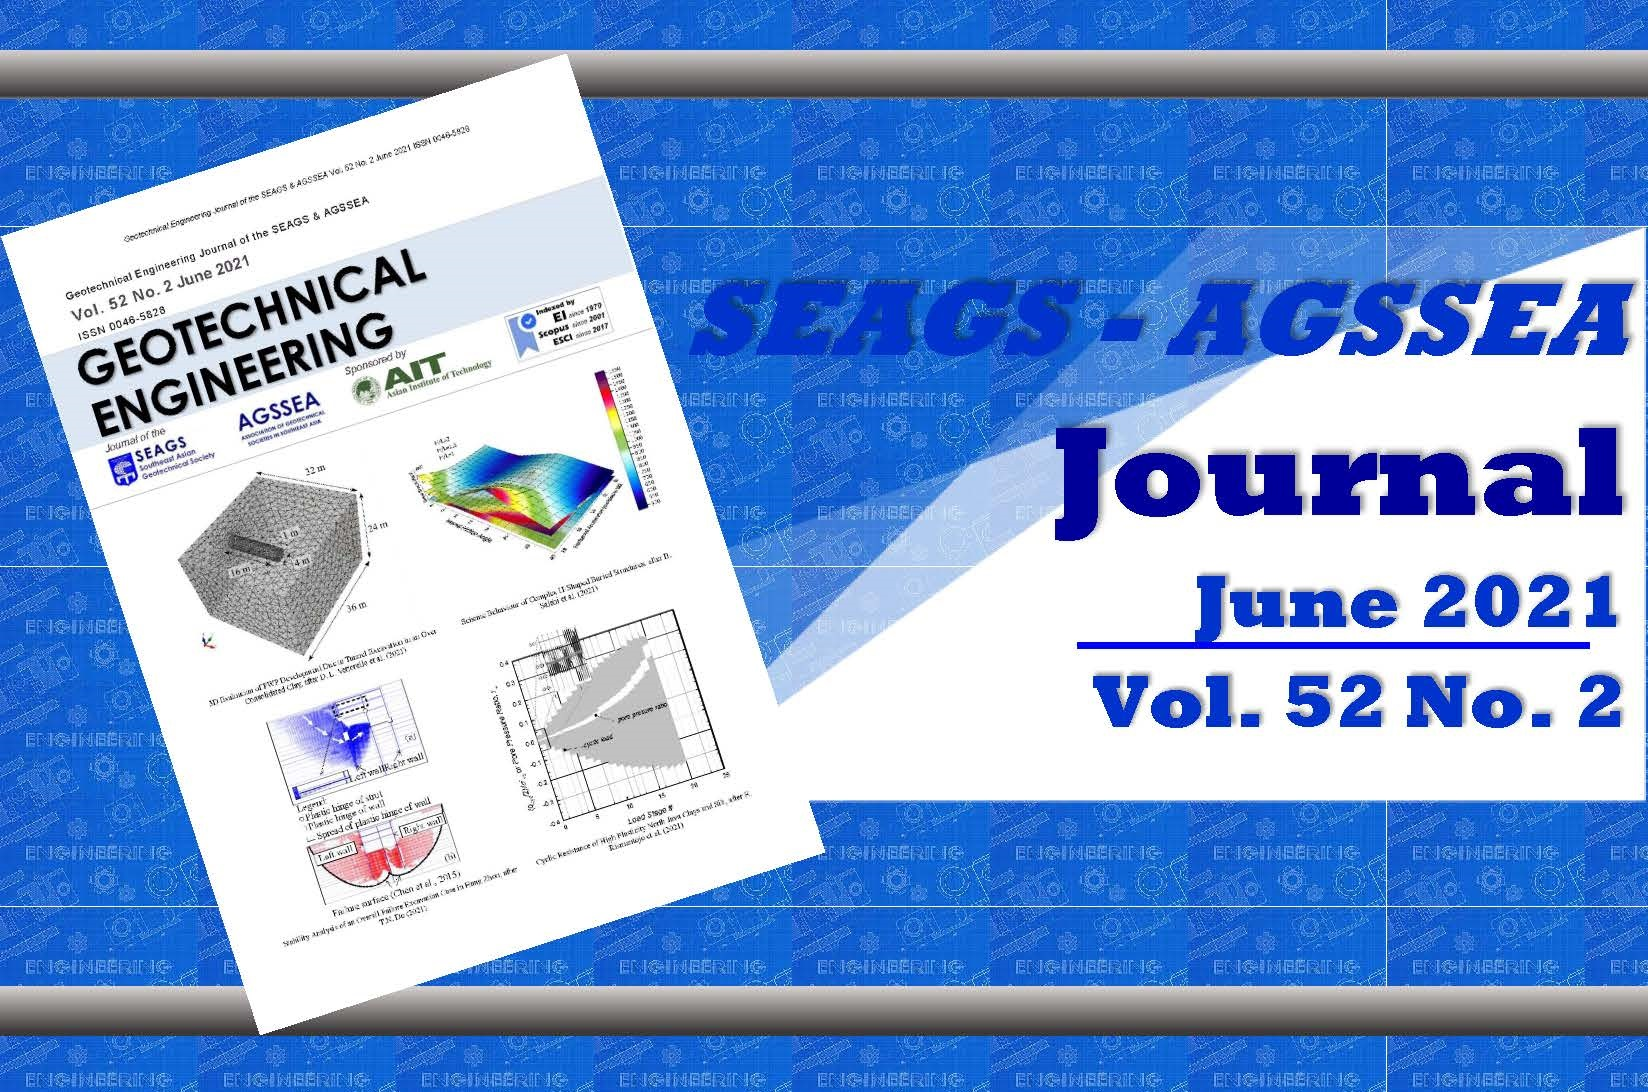 Geotechnical Engineering Journal of the SEAGS & AGSSEA Vol. 52 No. 2 June 2021 ISSN 0046-5828 Sponsored by:Asian Institute of Technology Contents and Abstracts The Effect of Compaction Effort on […]